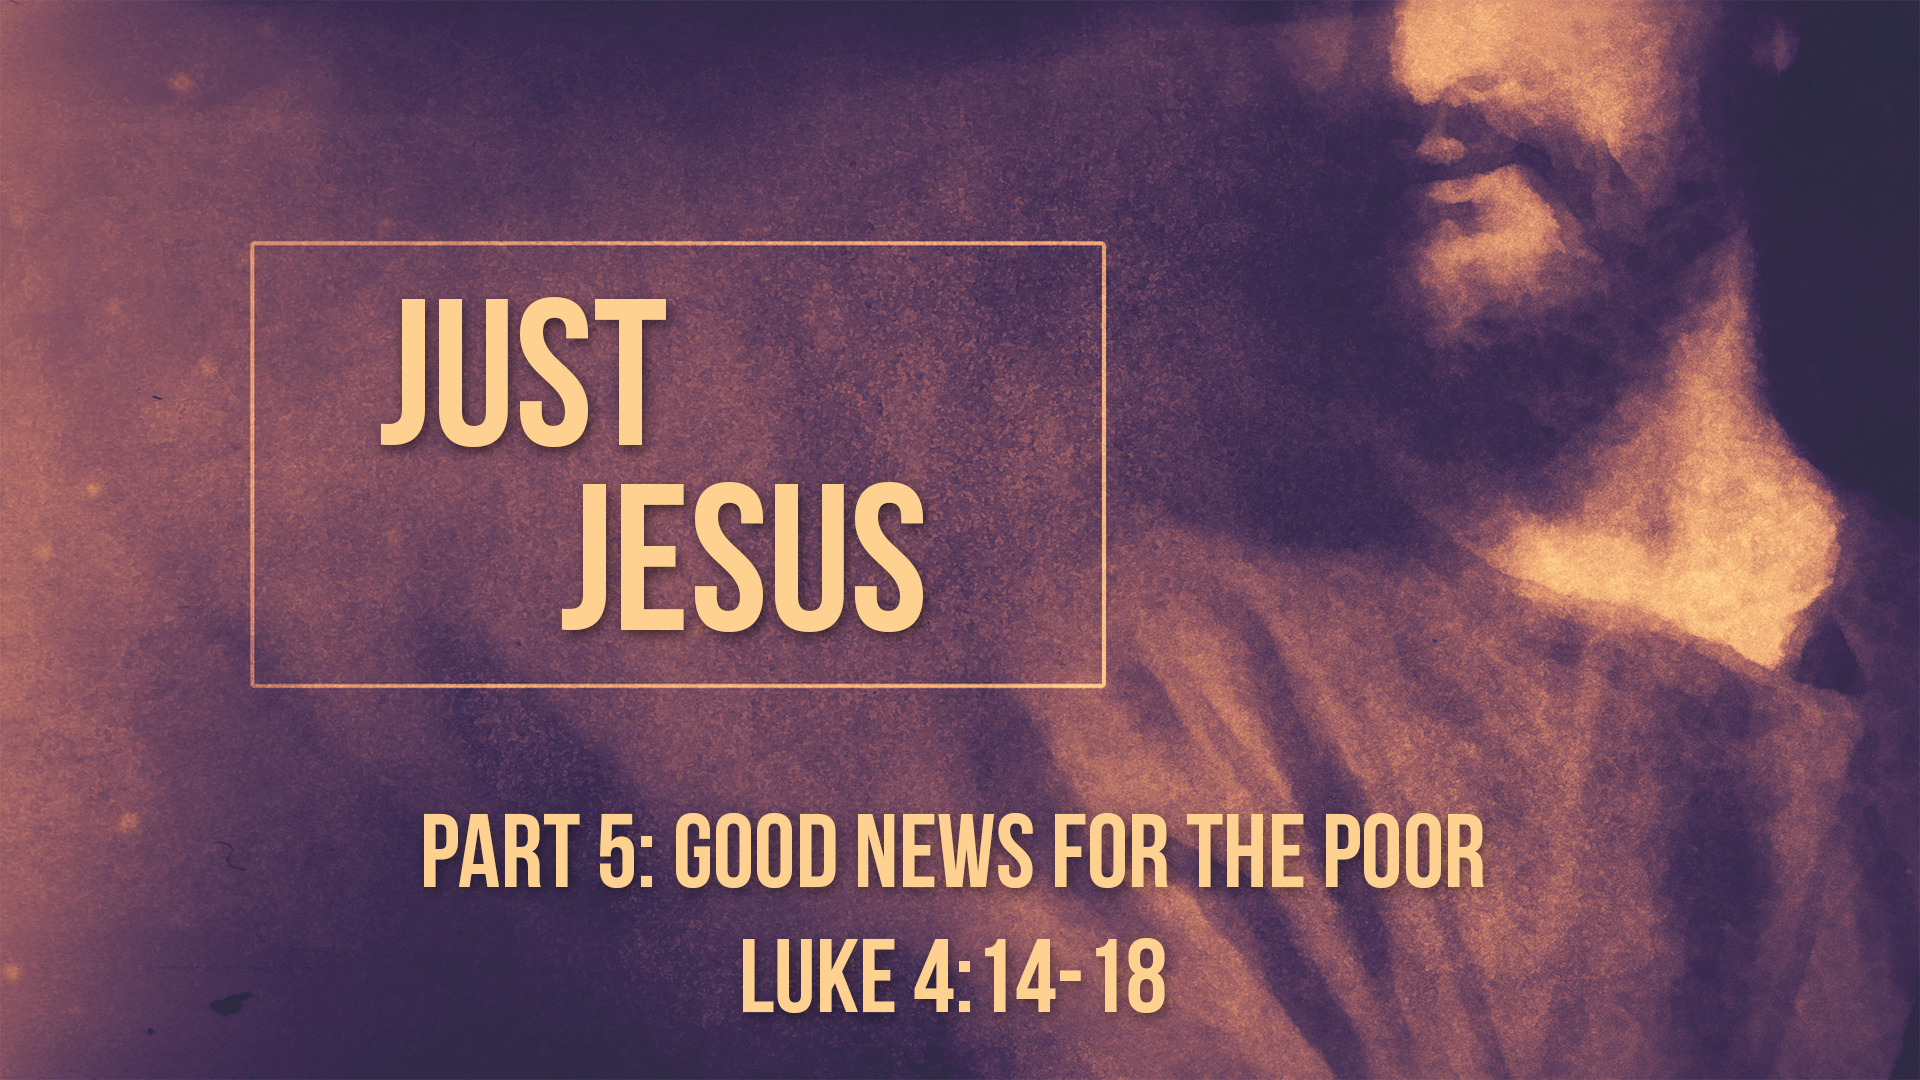 Part 5: Good News for the Poor